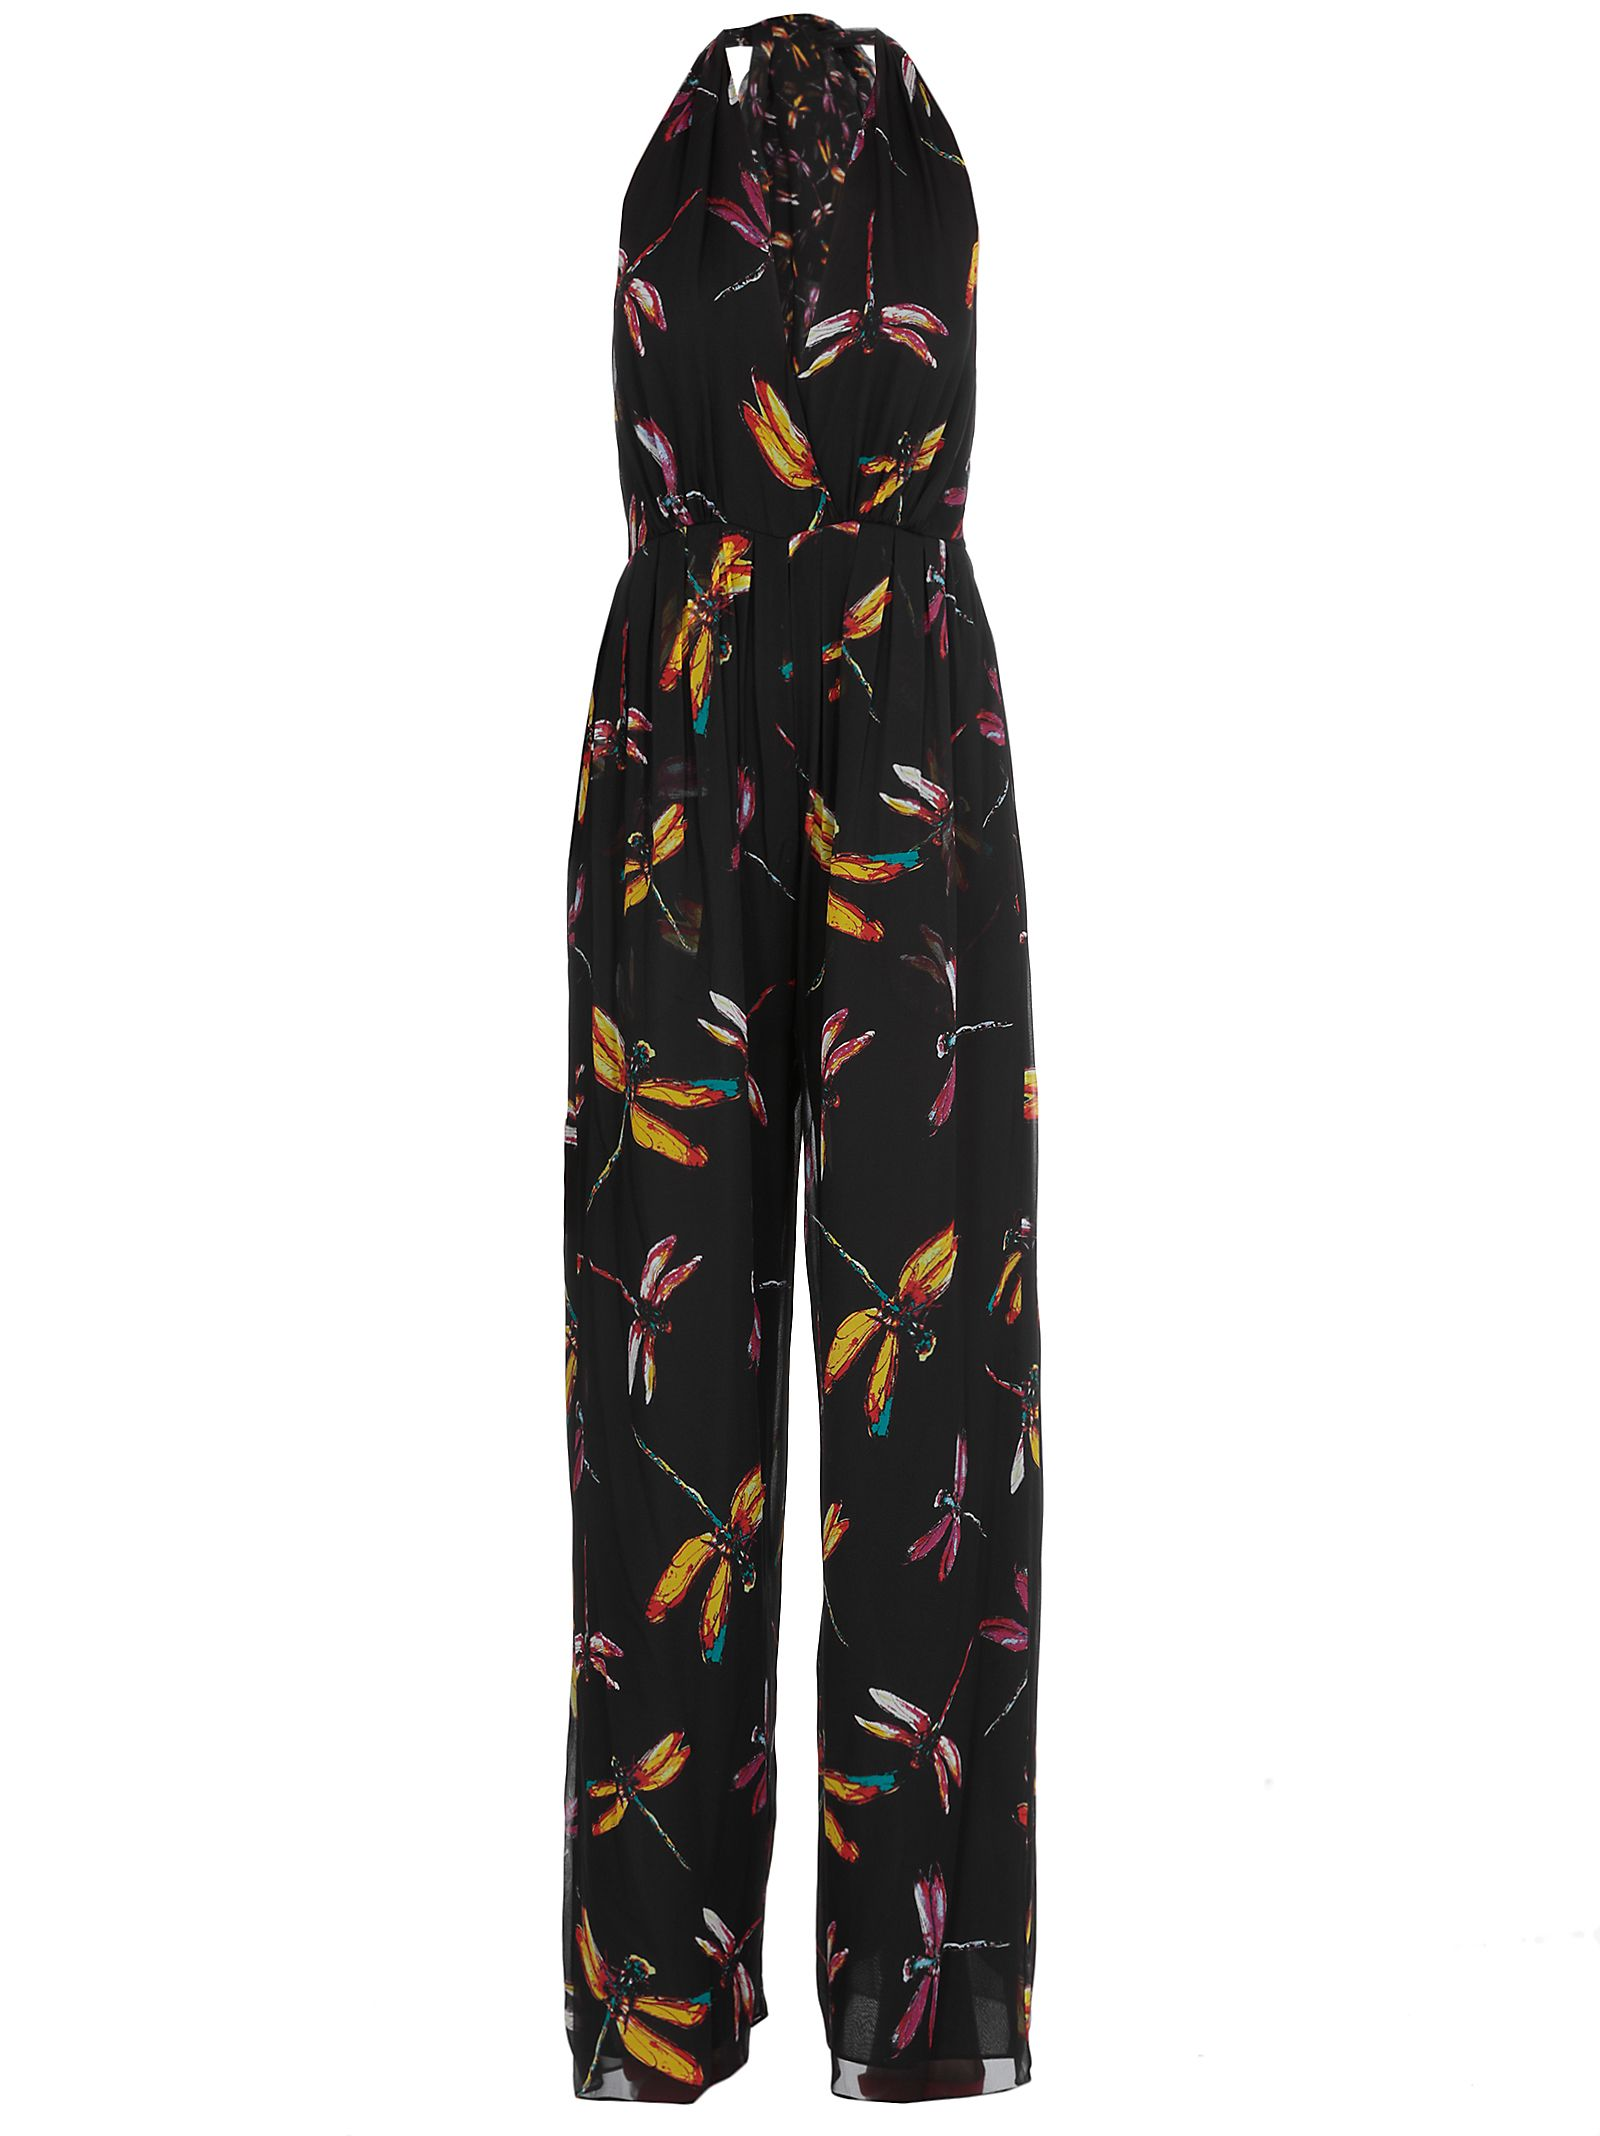 15ef45335aaa Shop Diane von Furstenberg Jumpsuits and Playsuits on sale at the ...